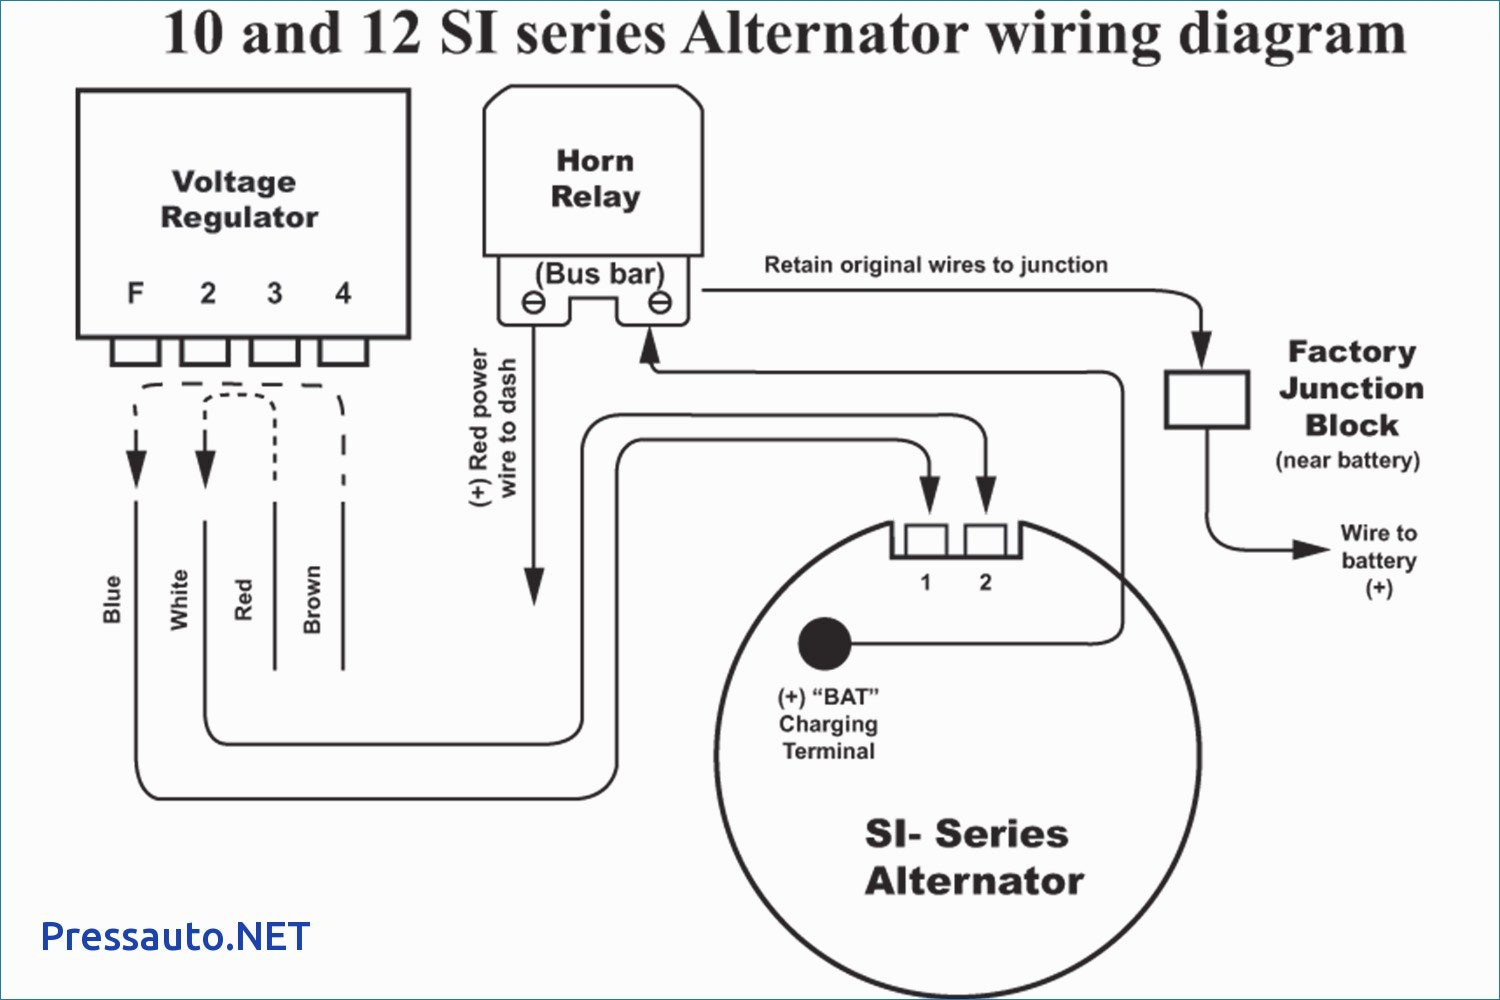 Two Wire Alternator Wiring - Data Wiring Diagram Today - One Wire Alternator Wiring Diagram Ford